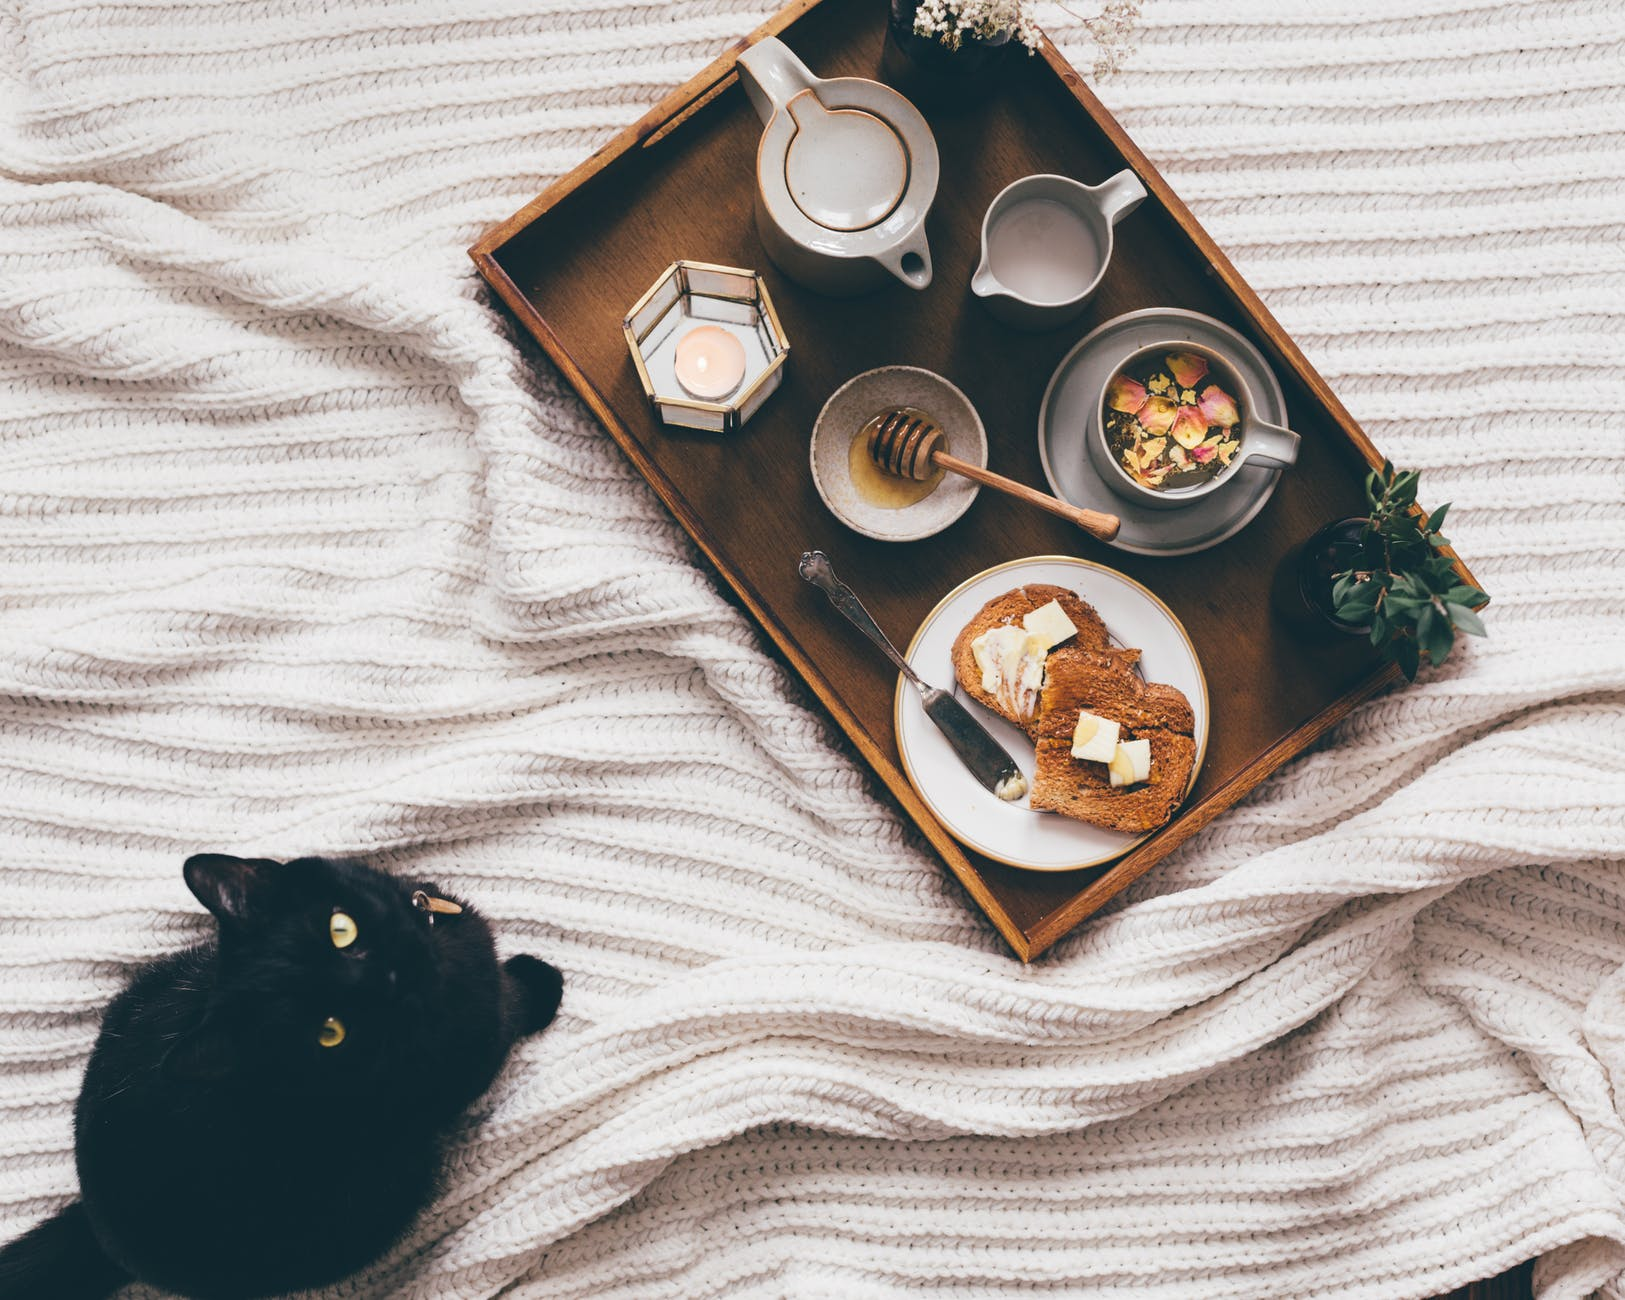 tray with snack near cat on bed